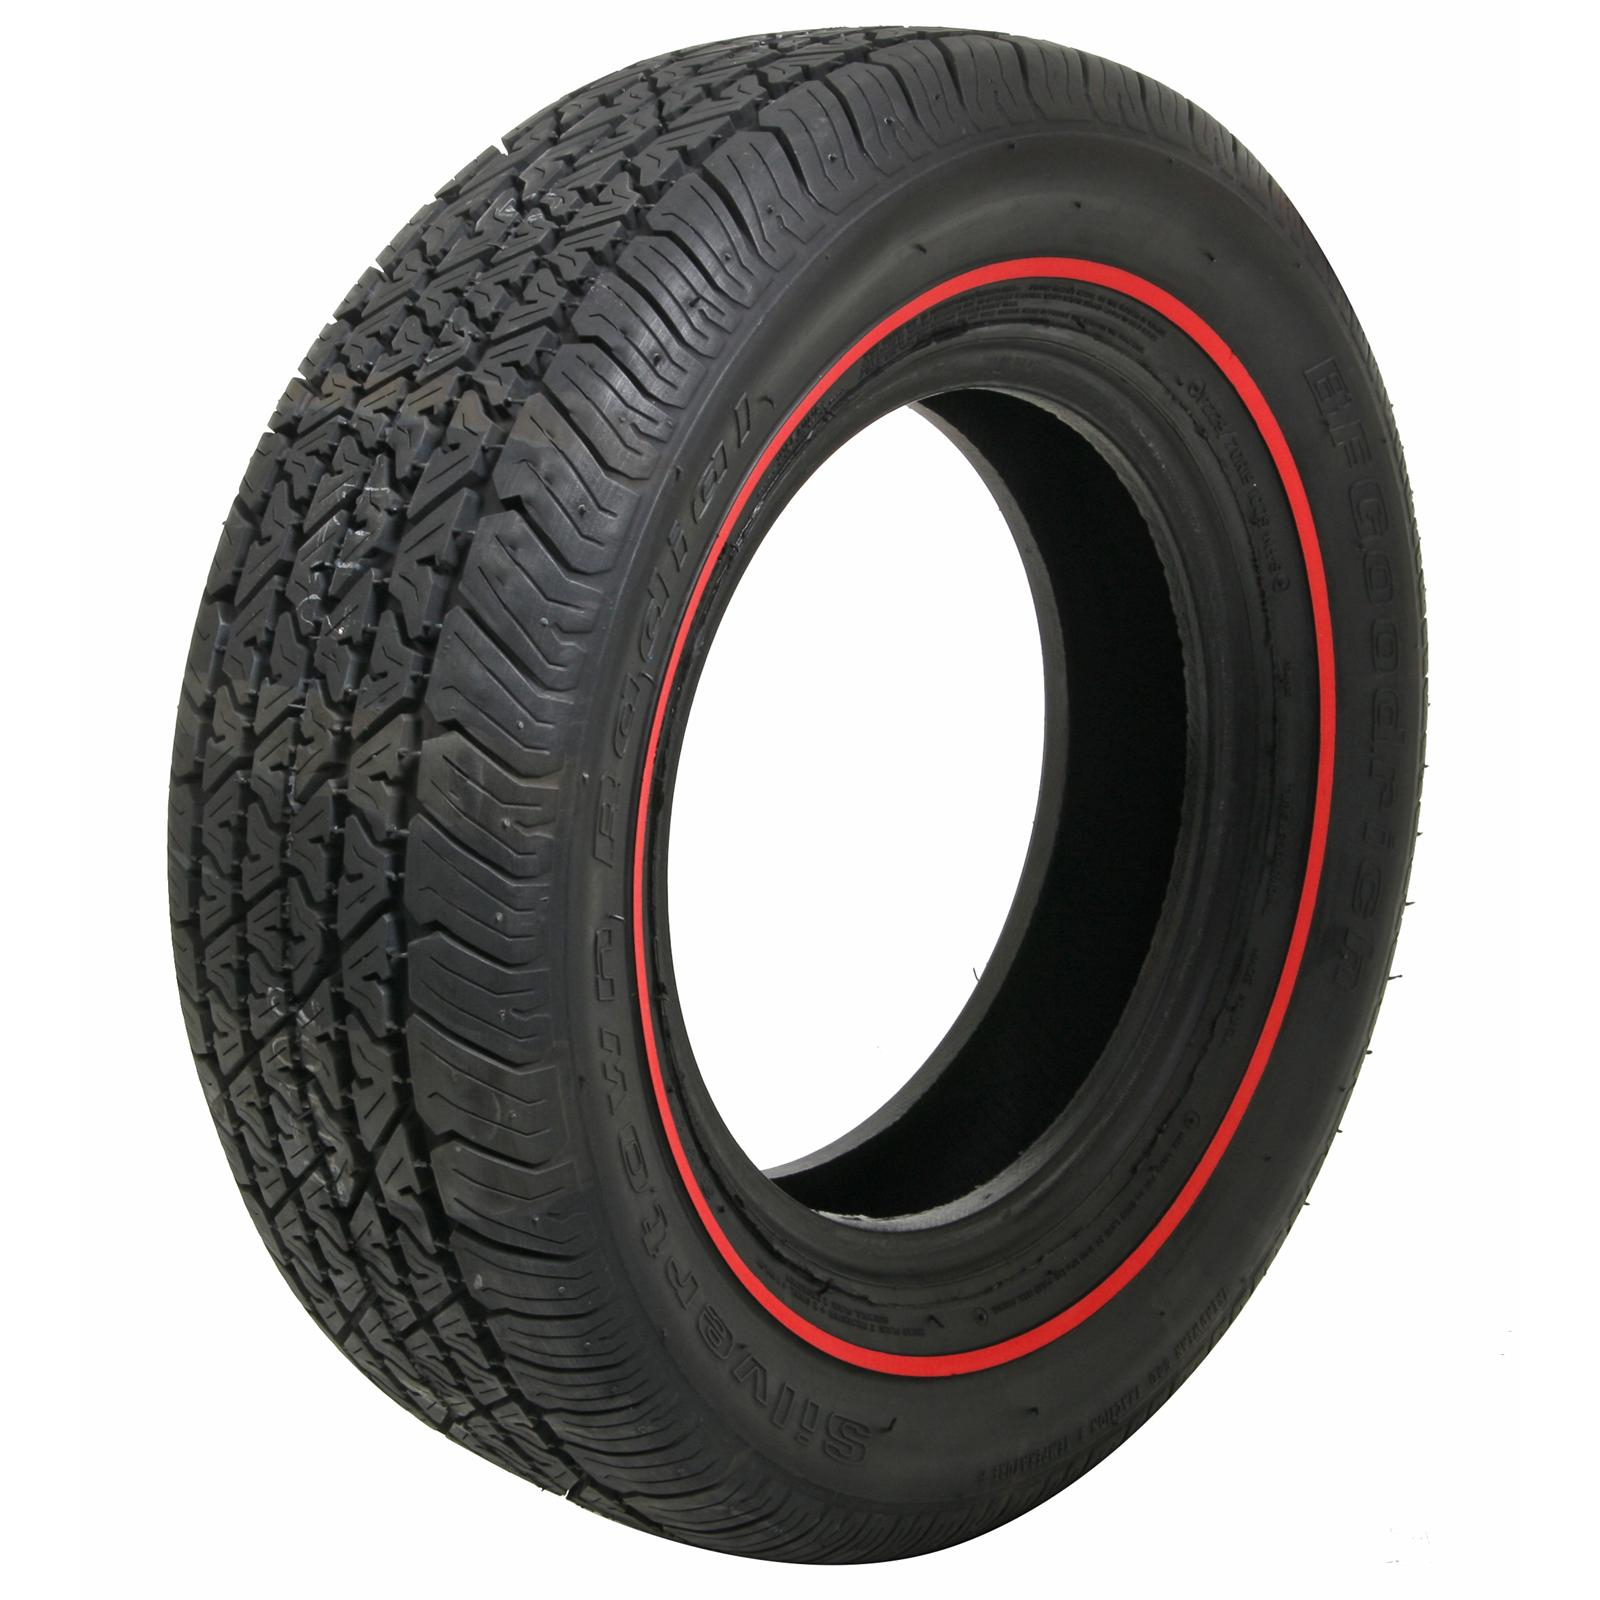 Red Line Tires >> Coker Bfgoodrich Silvertown Radial Tires 579786 Free Shipping On